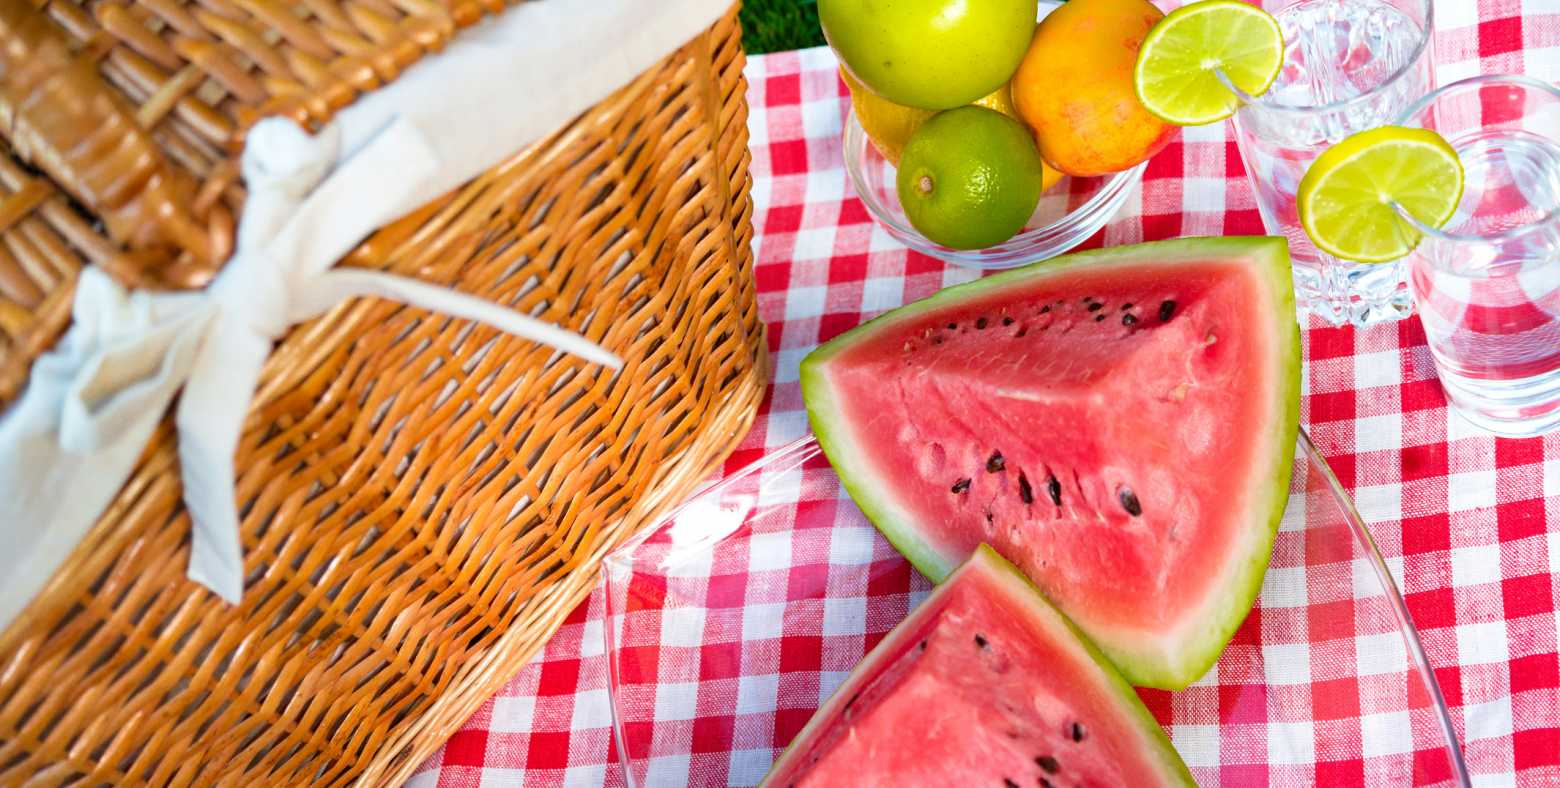 picnic basket and fruits on mat